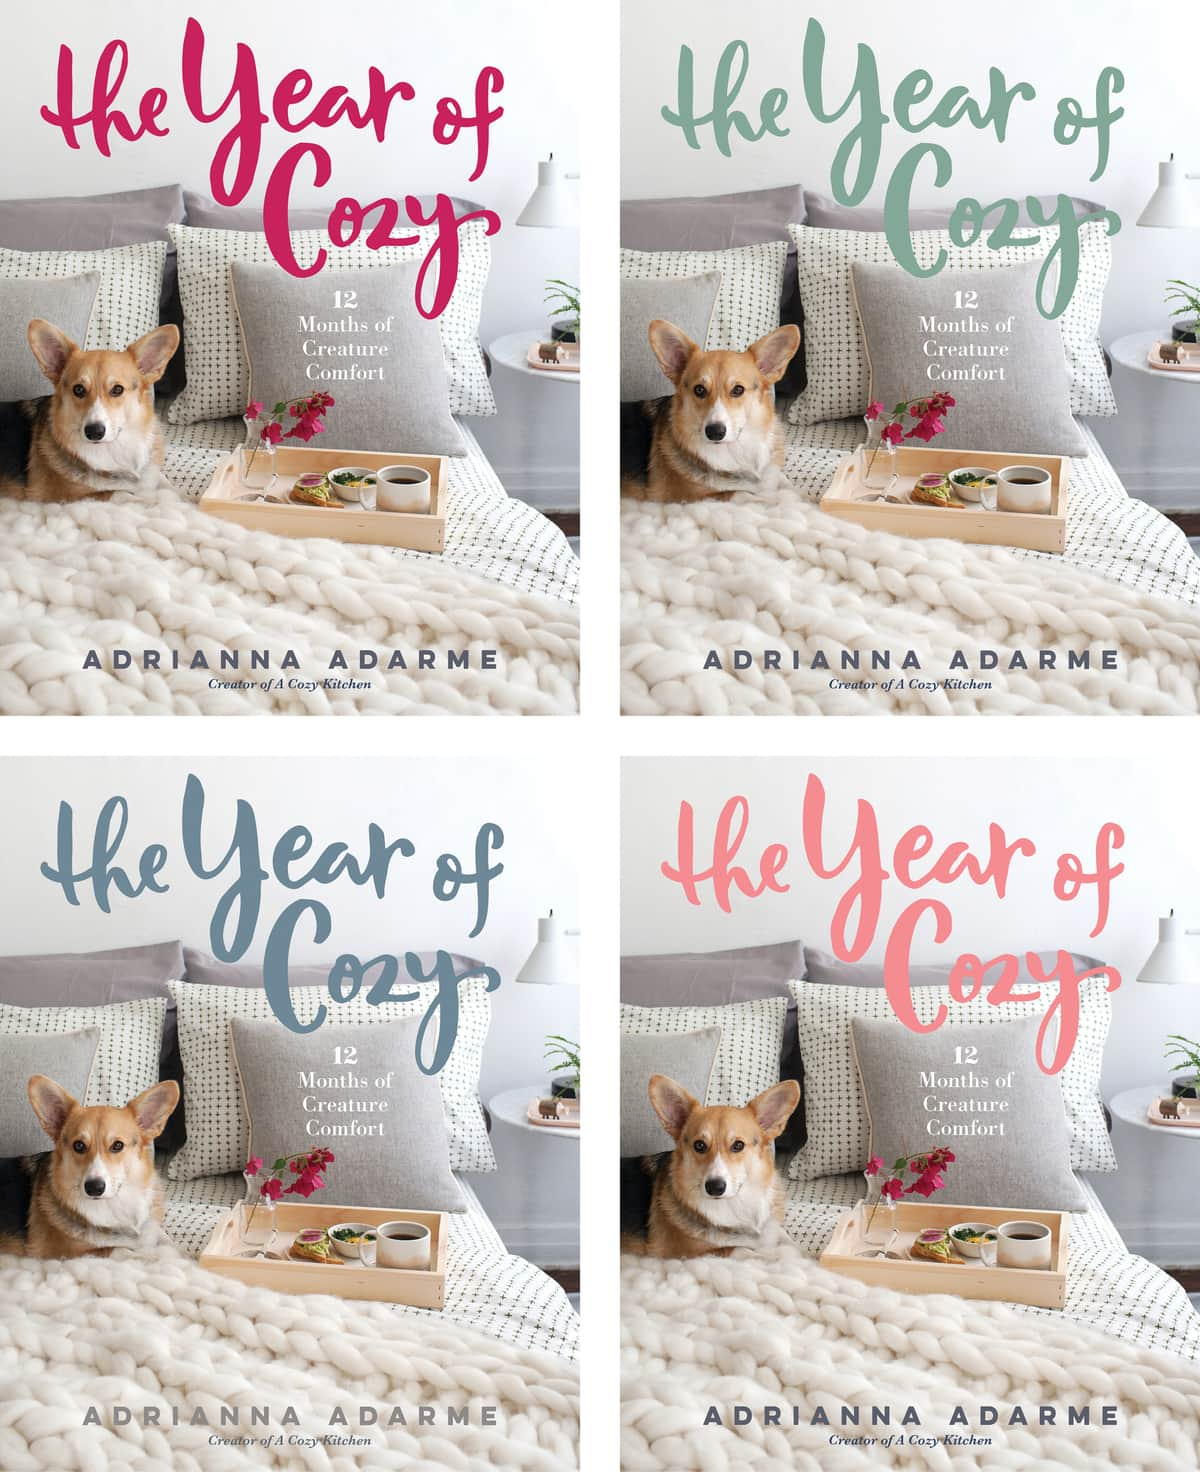 The Year of Cozy - Color Title Options